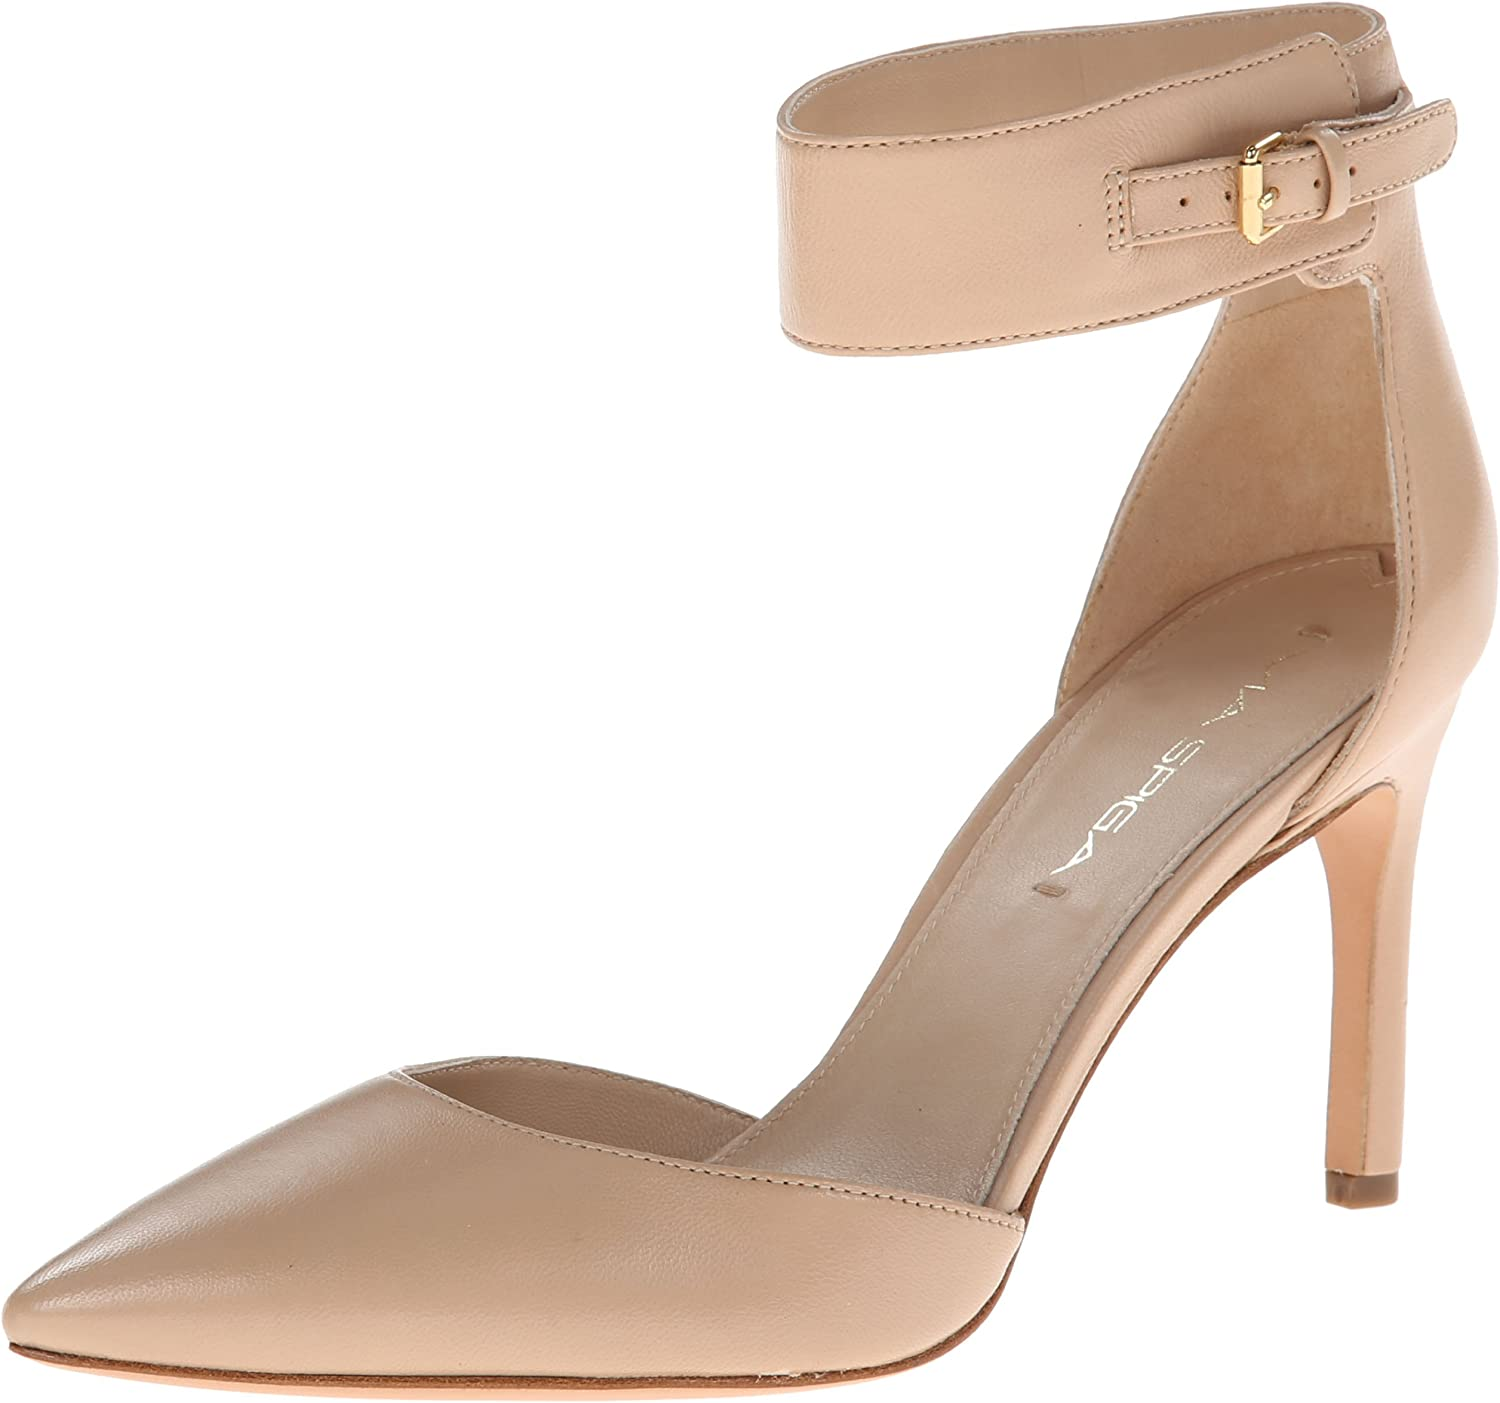 Via Spiga Women's Idabelle Dress Pump